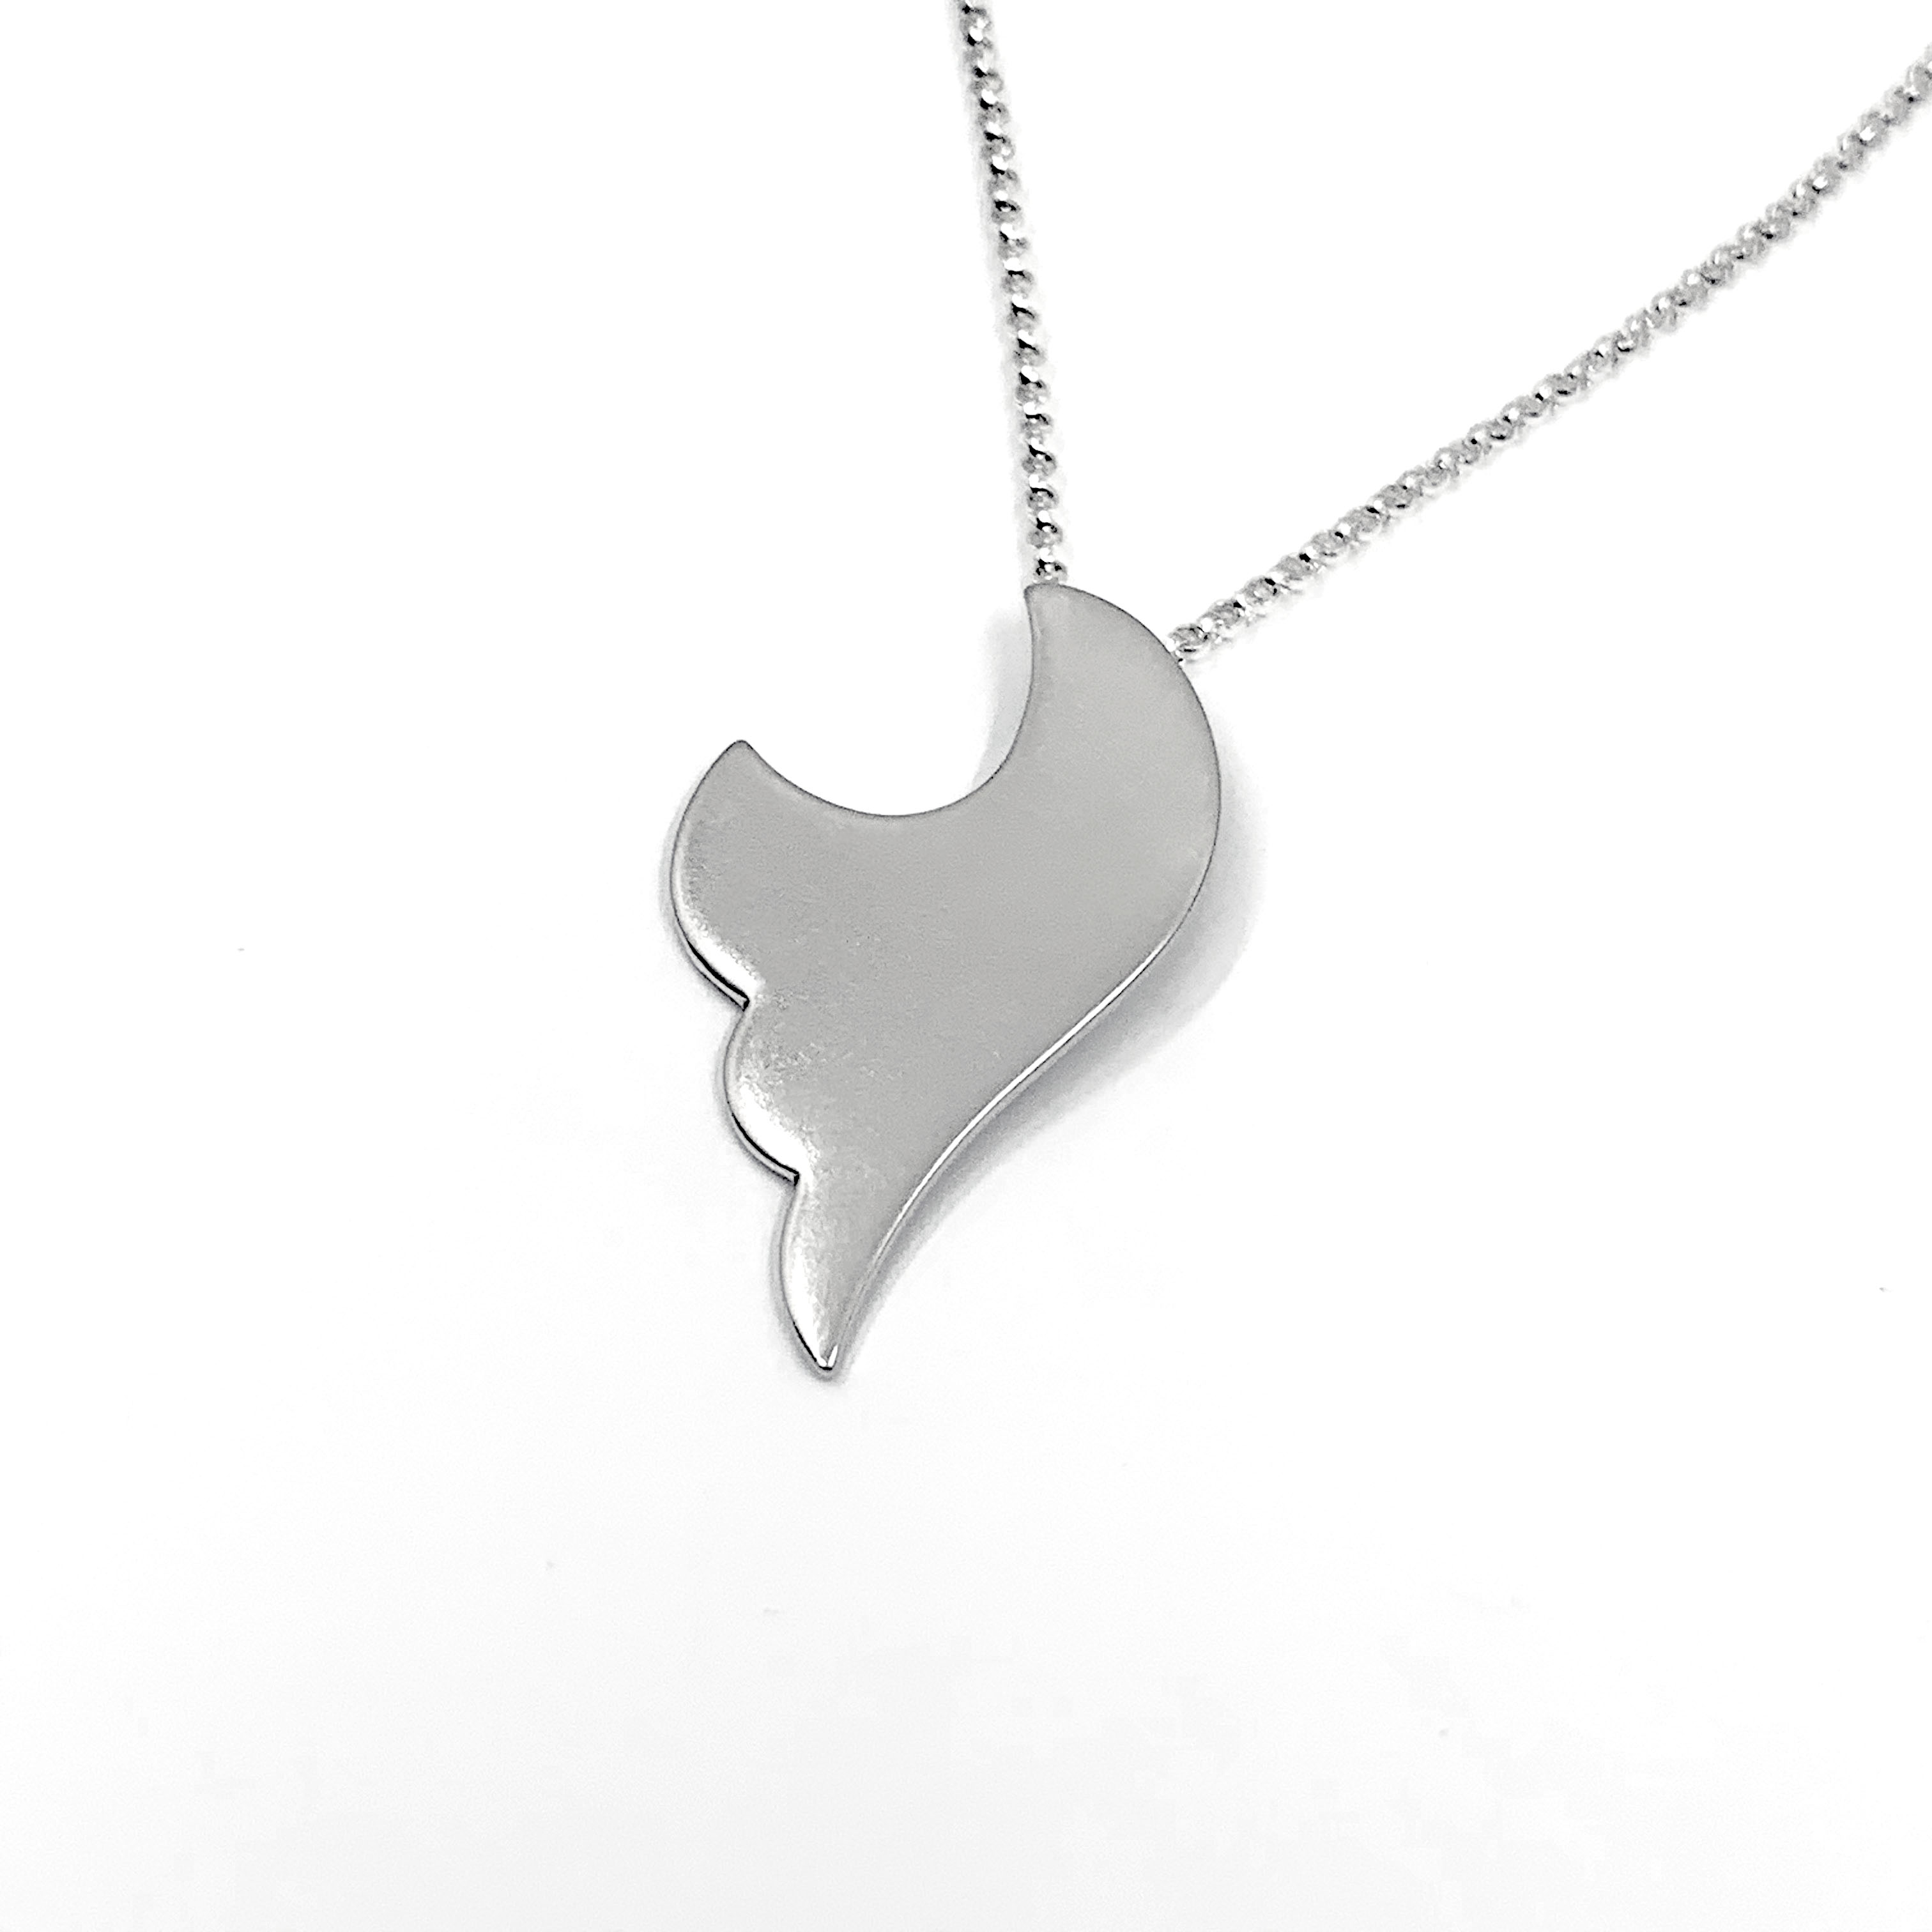 Untethered silver necklace